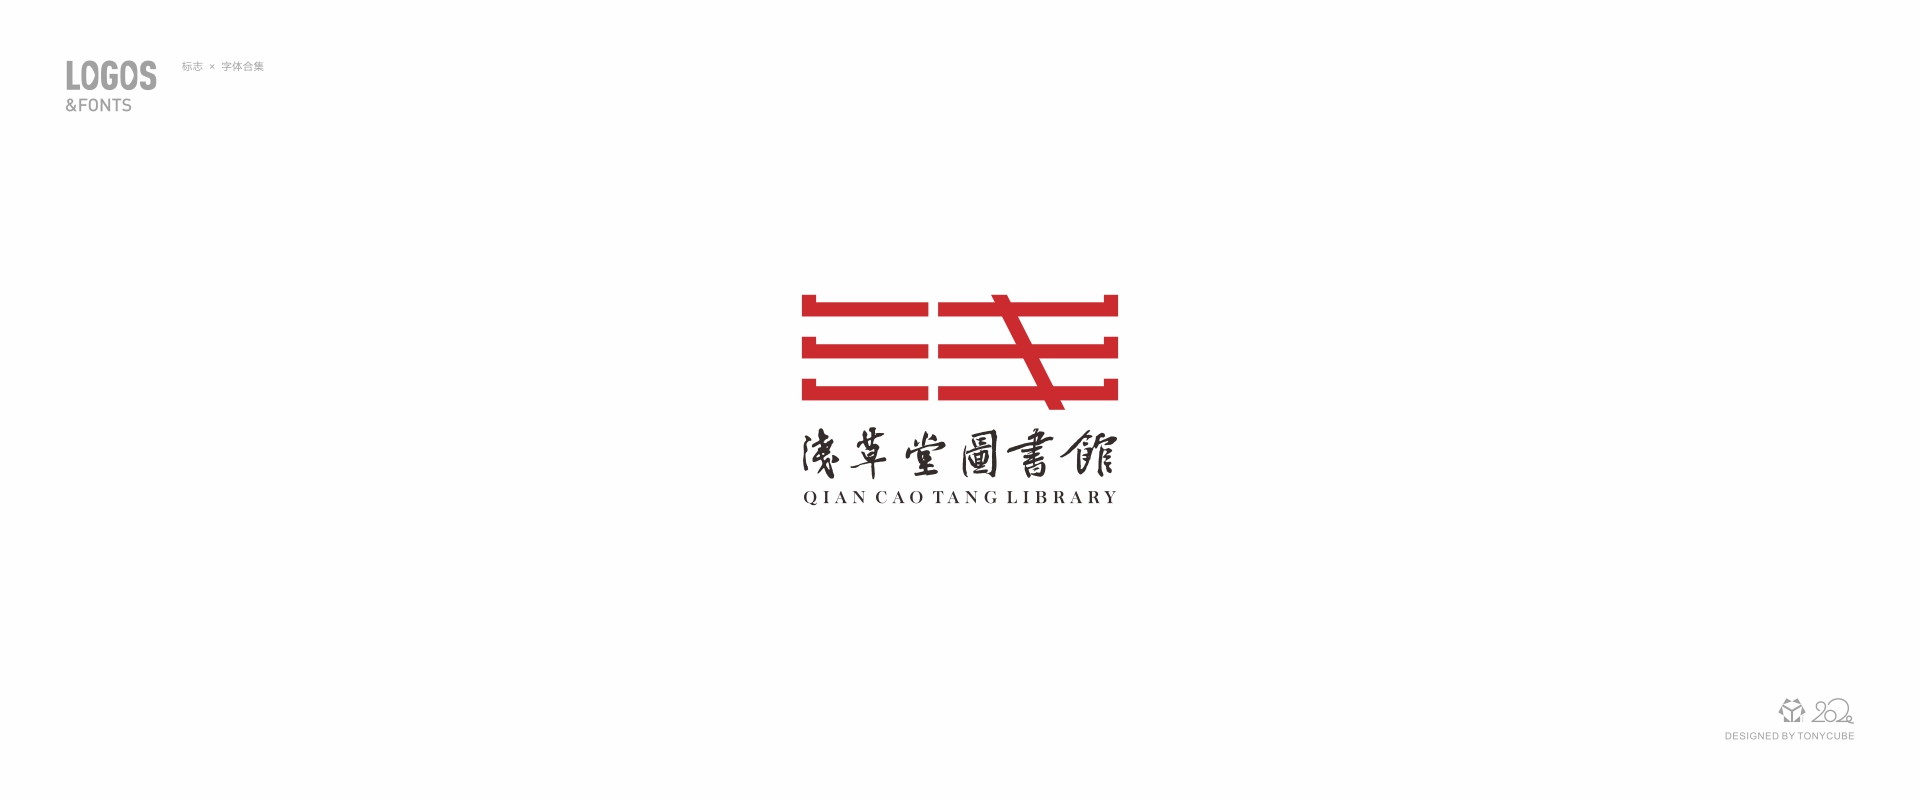 32P The ingenious combination of creative Chinese characters and logo